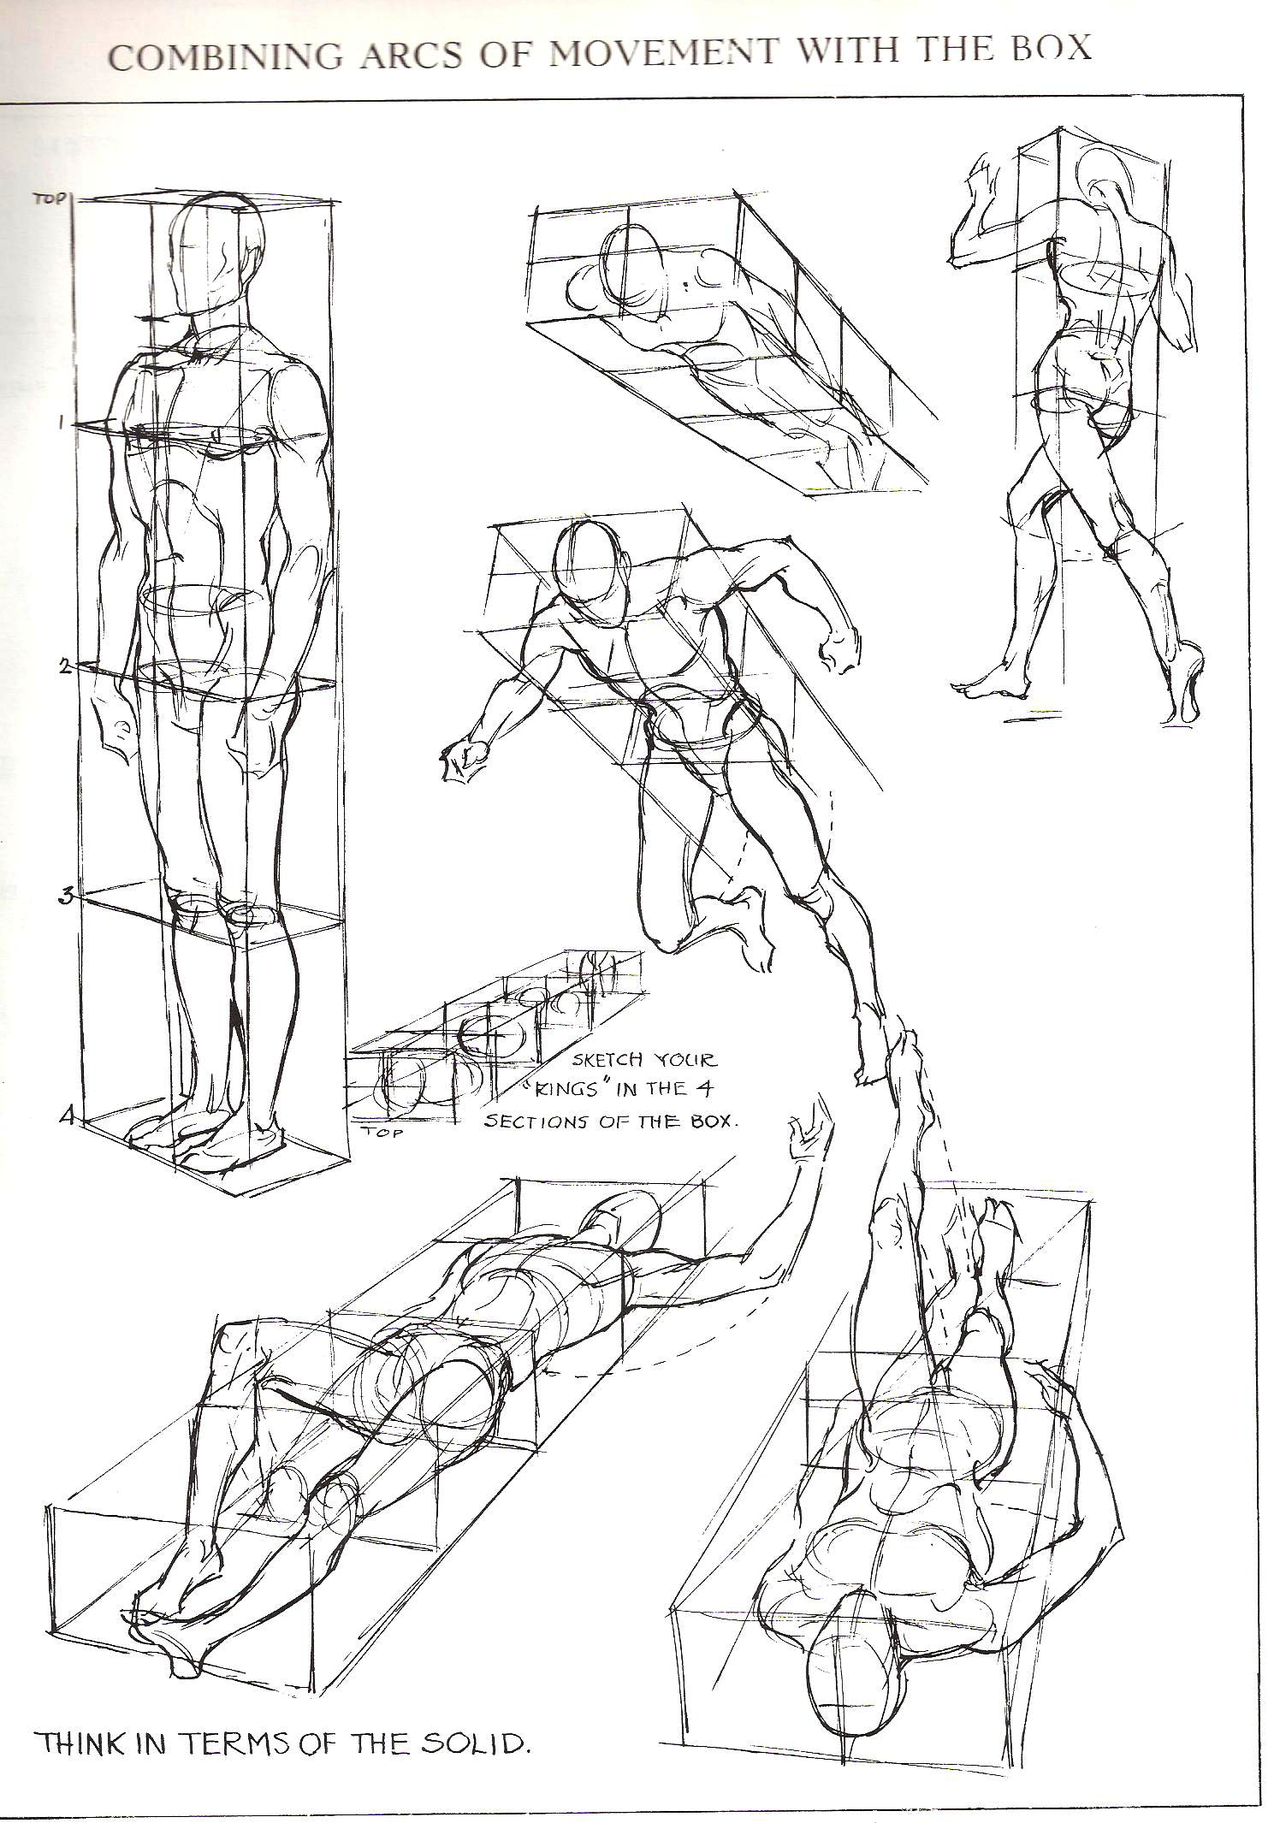 Drawn figurine perspective For from Drawing perspective All